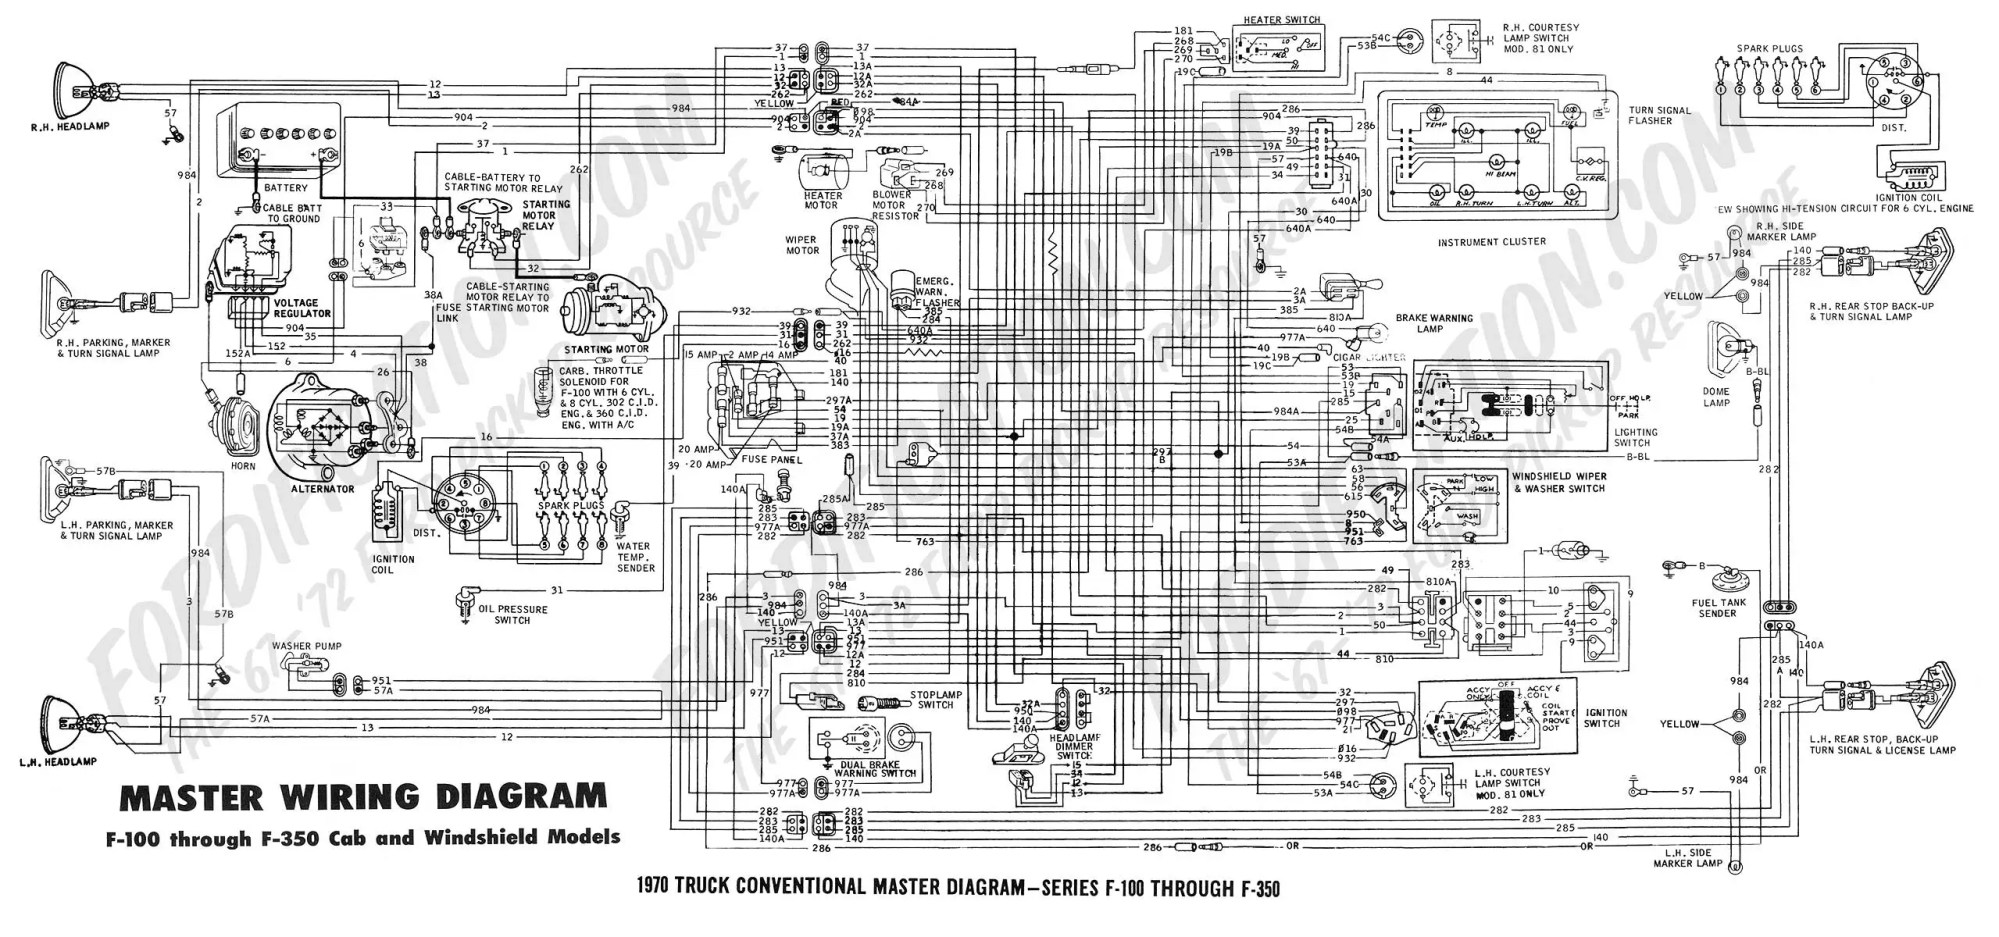 hight resolution of 1989 ford 250 wiring diagram wiring diagrams konsult1989 ford f350 wiring diagram wiring diagram paper 1989